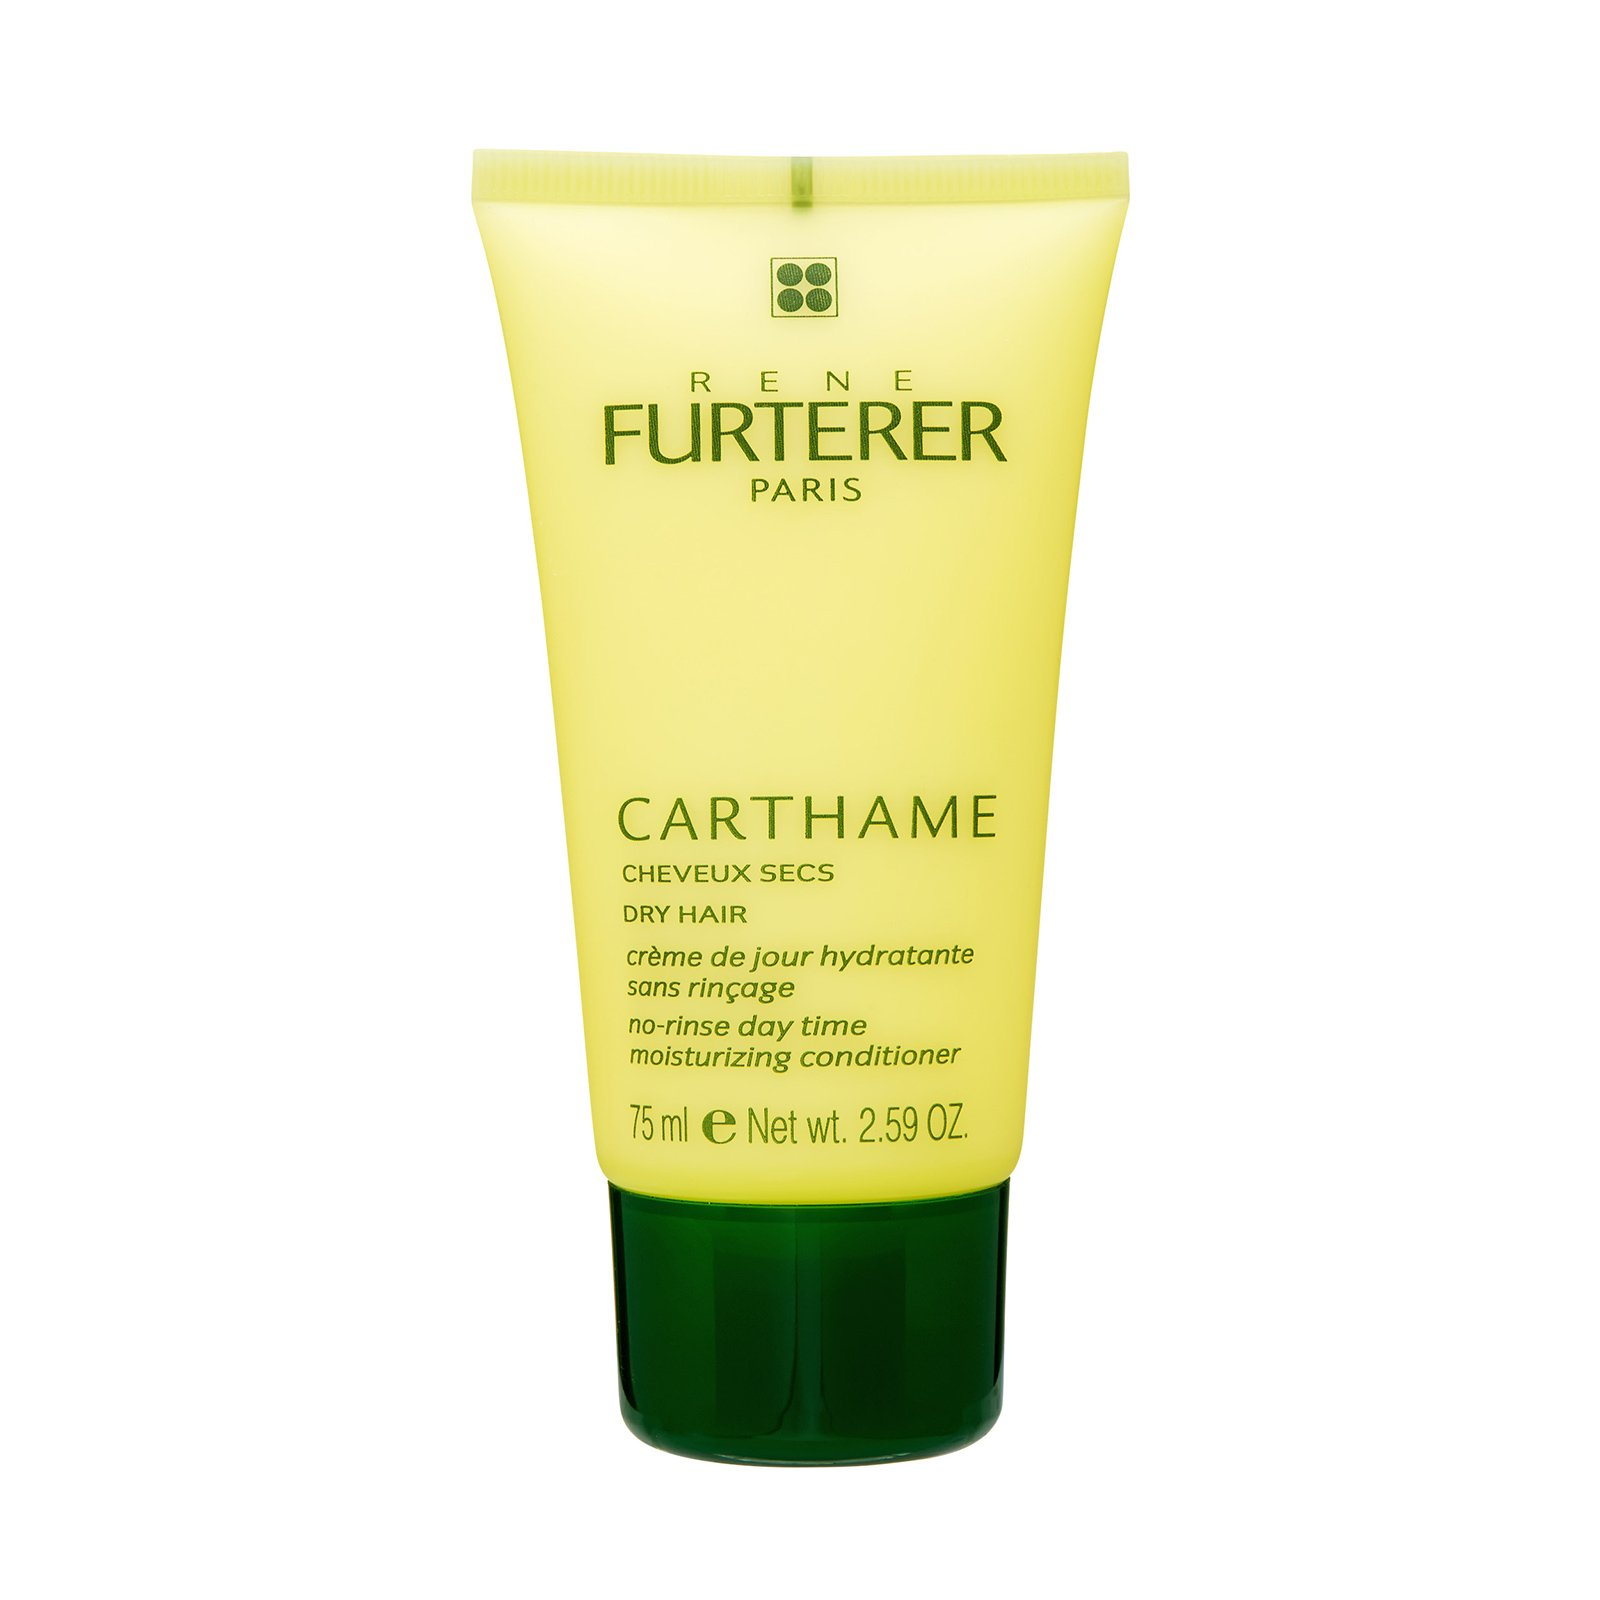 RENE FURTERER Carthame  No-Rinse Day Time Moisturizing Conditioner (Dry Hair) 2.59oz, 75ml from Cosme-De.com